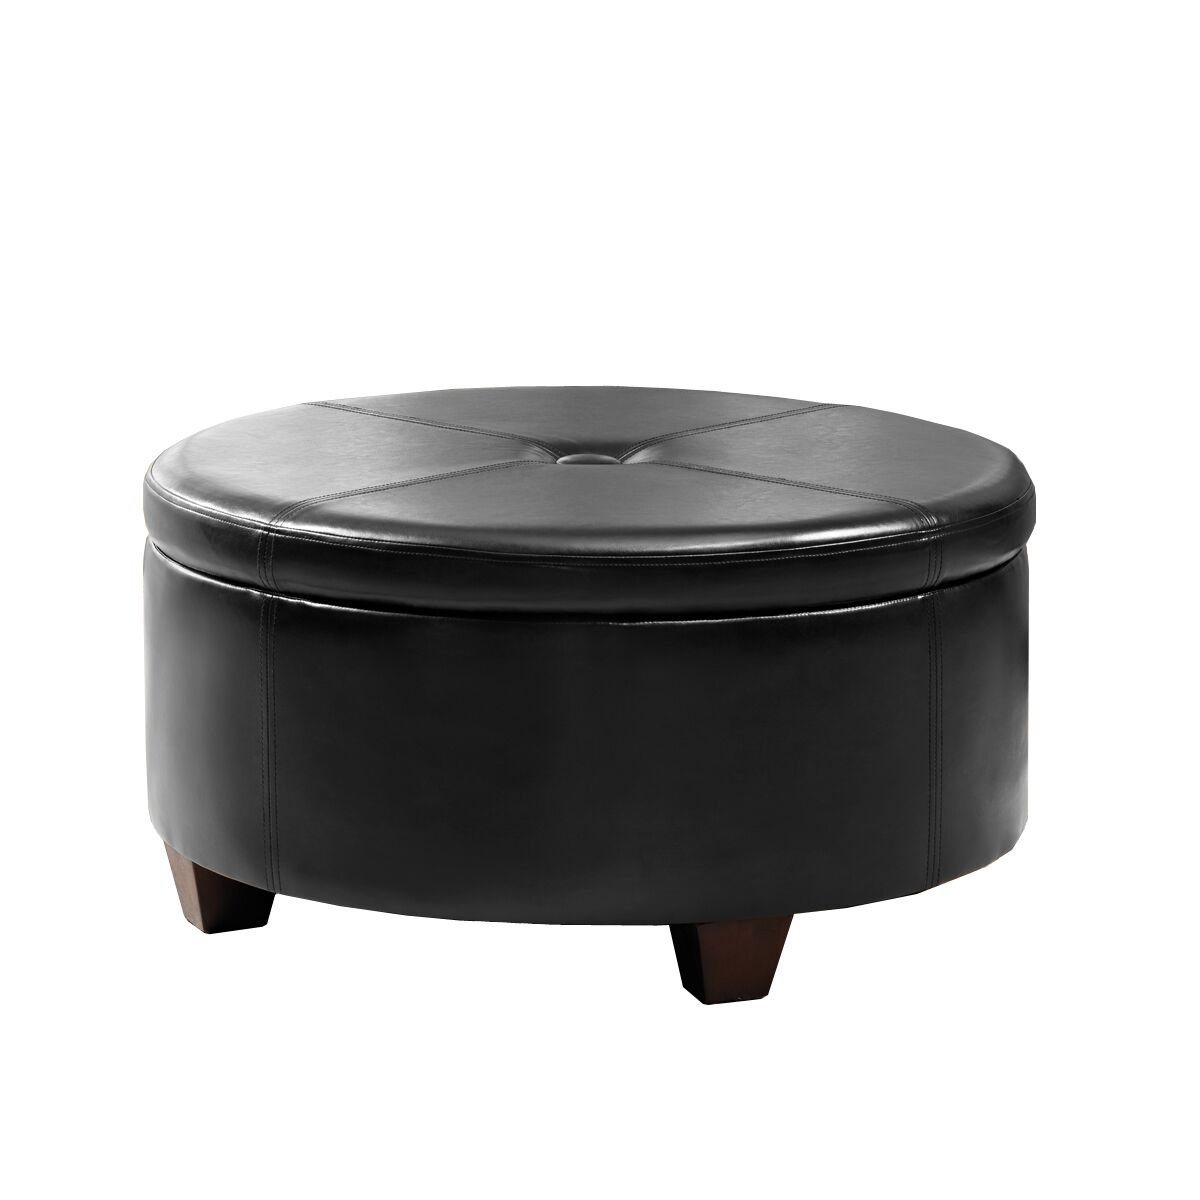 Brilliant Large Round Ottoman Review The Best On The Market In Gmtry Best Dining Table And Chair Ideas Images Gmtryco